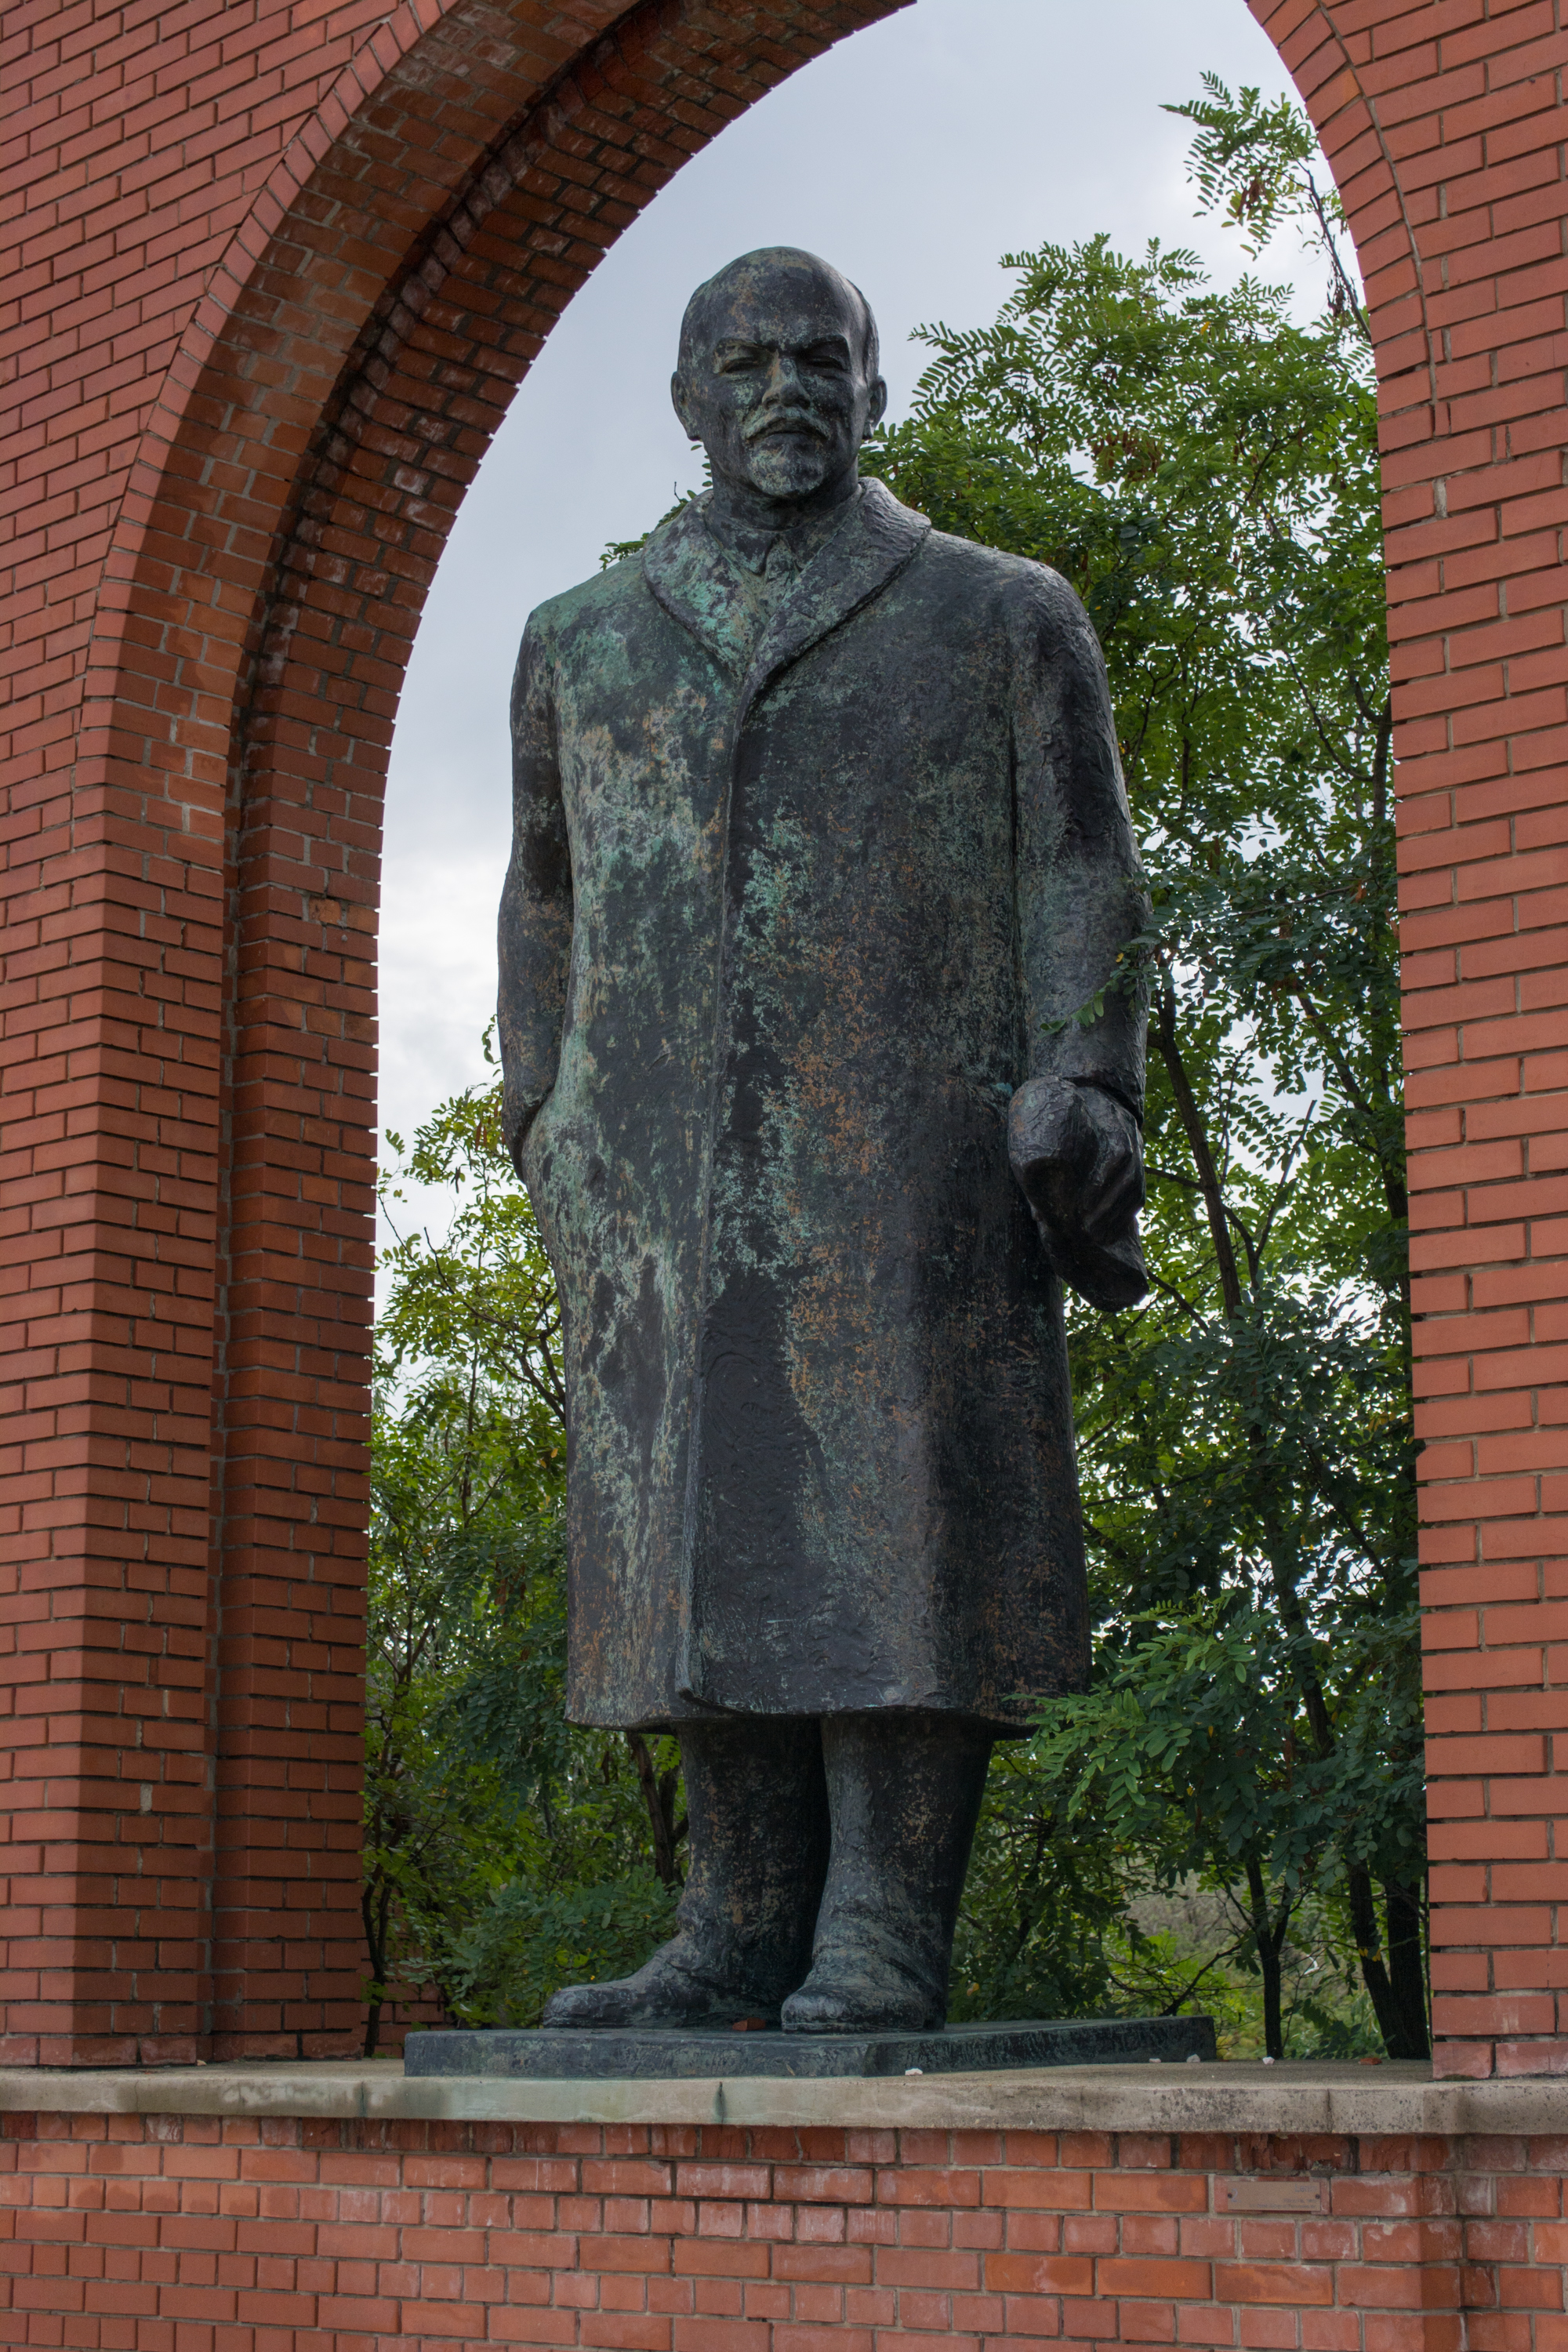 A statue of Vladimir Lenin, the first Premier of the Soviet Union